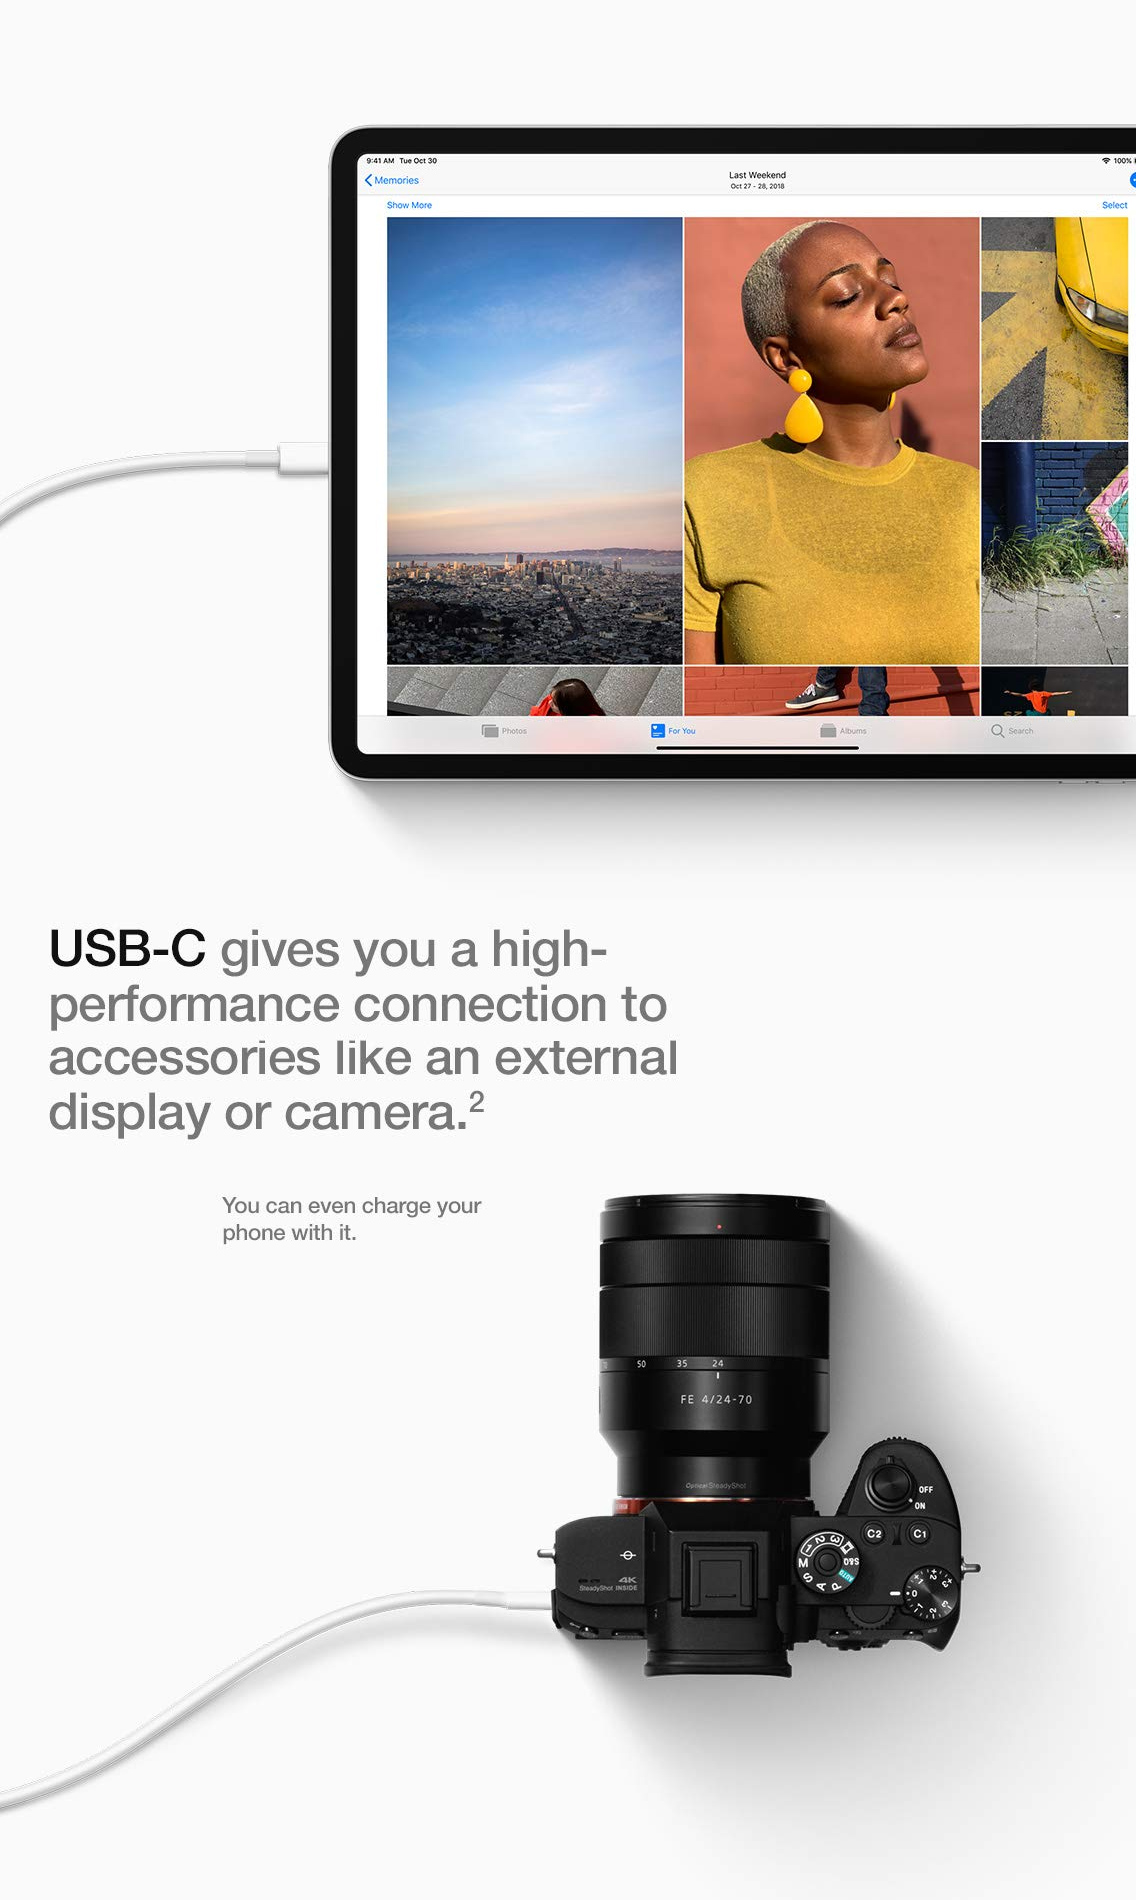 usb-c port allows connection to way range of peripherals